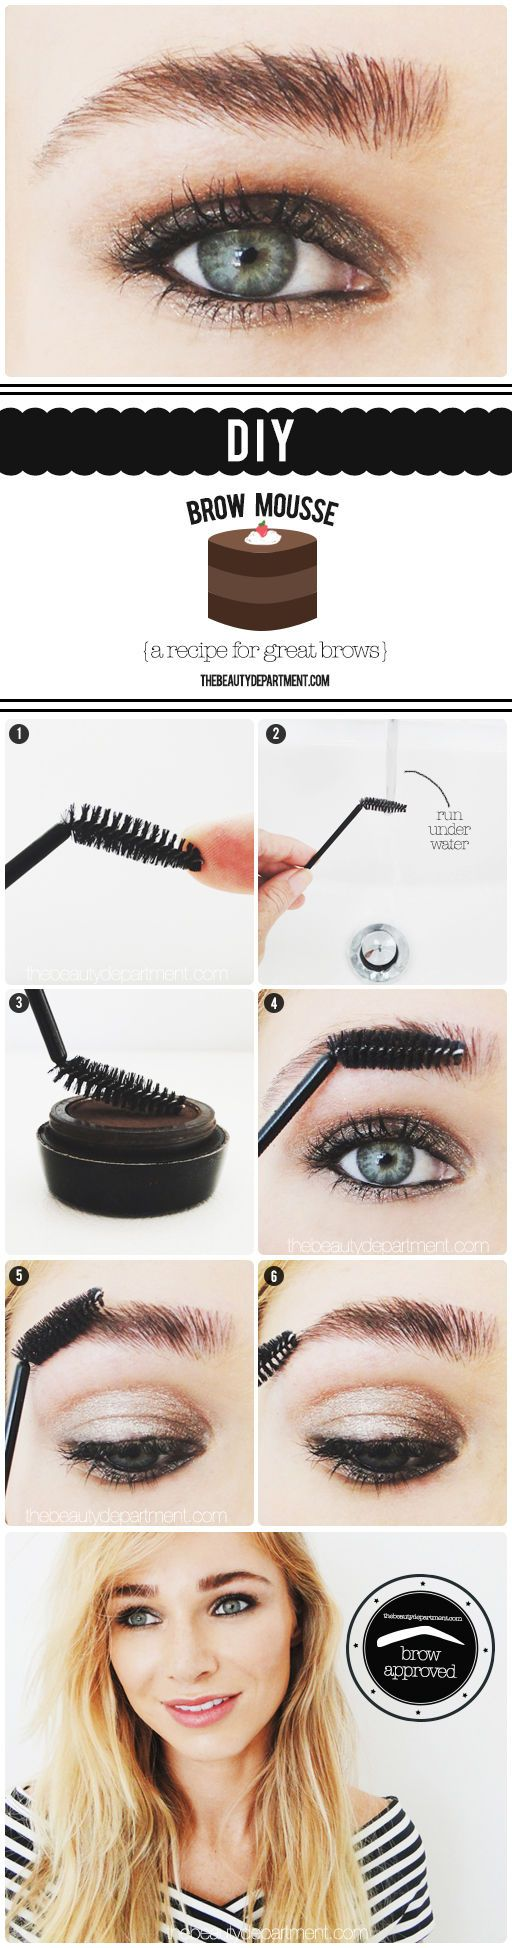 diy brow mousse